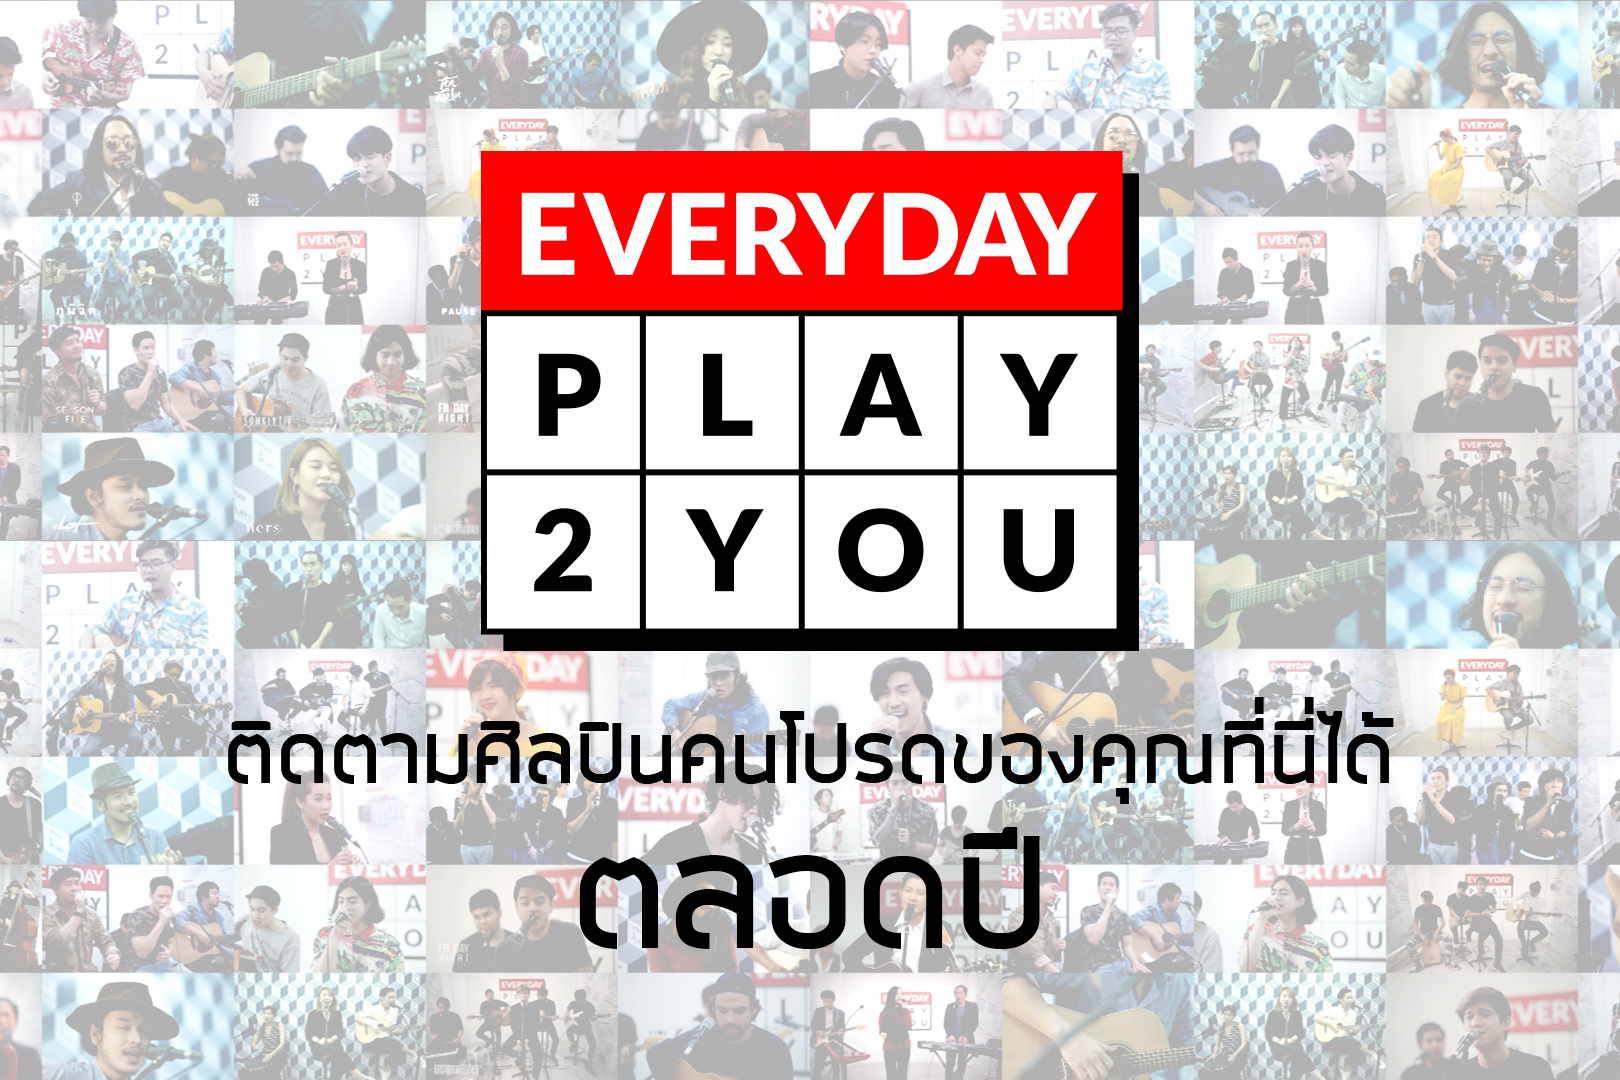 Everyday Play2You 2016